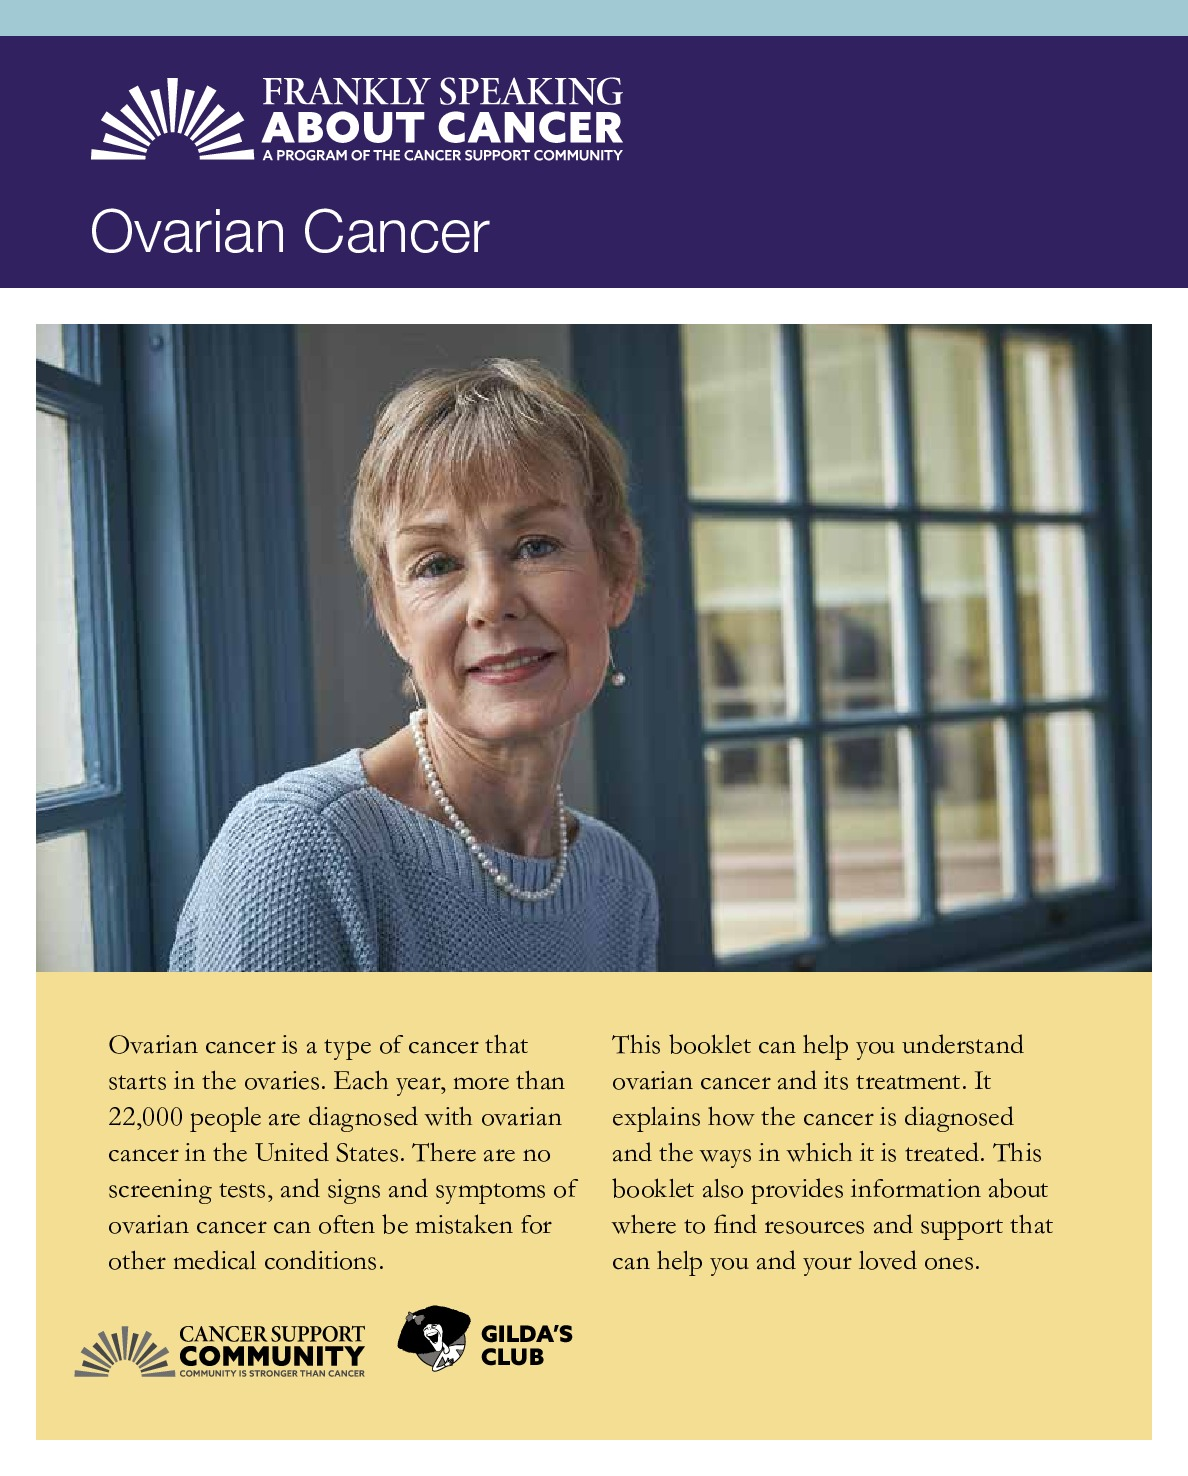 Frankly Speaking About Cancer: Ovarian Cancer